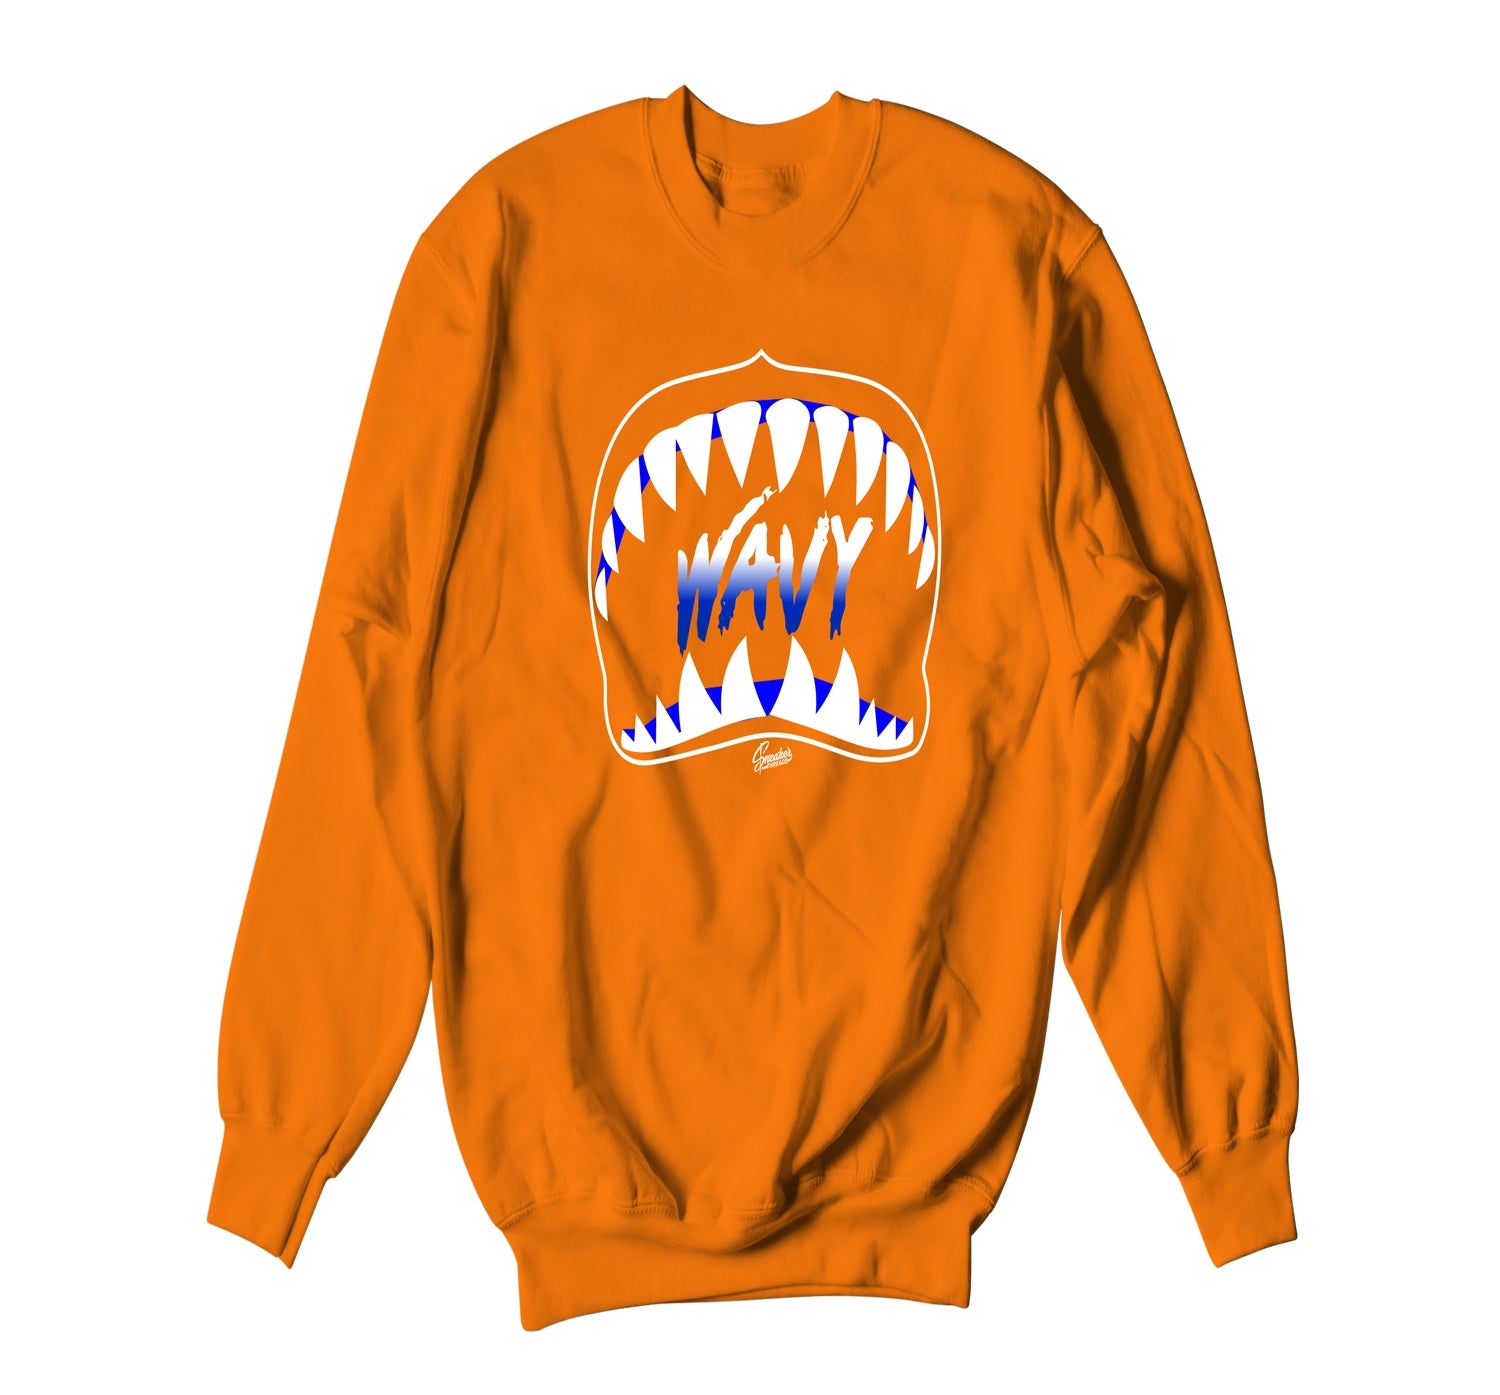 Jordan 3 Knicks Sweater - Wavy - Orange